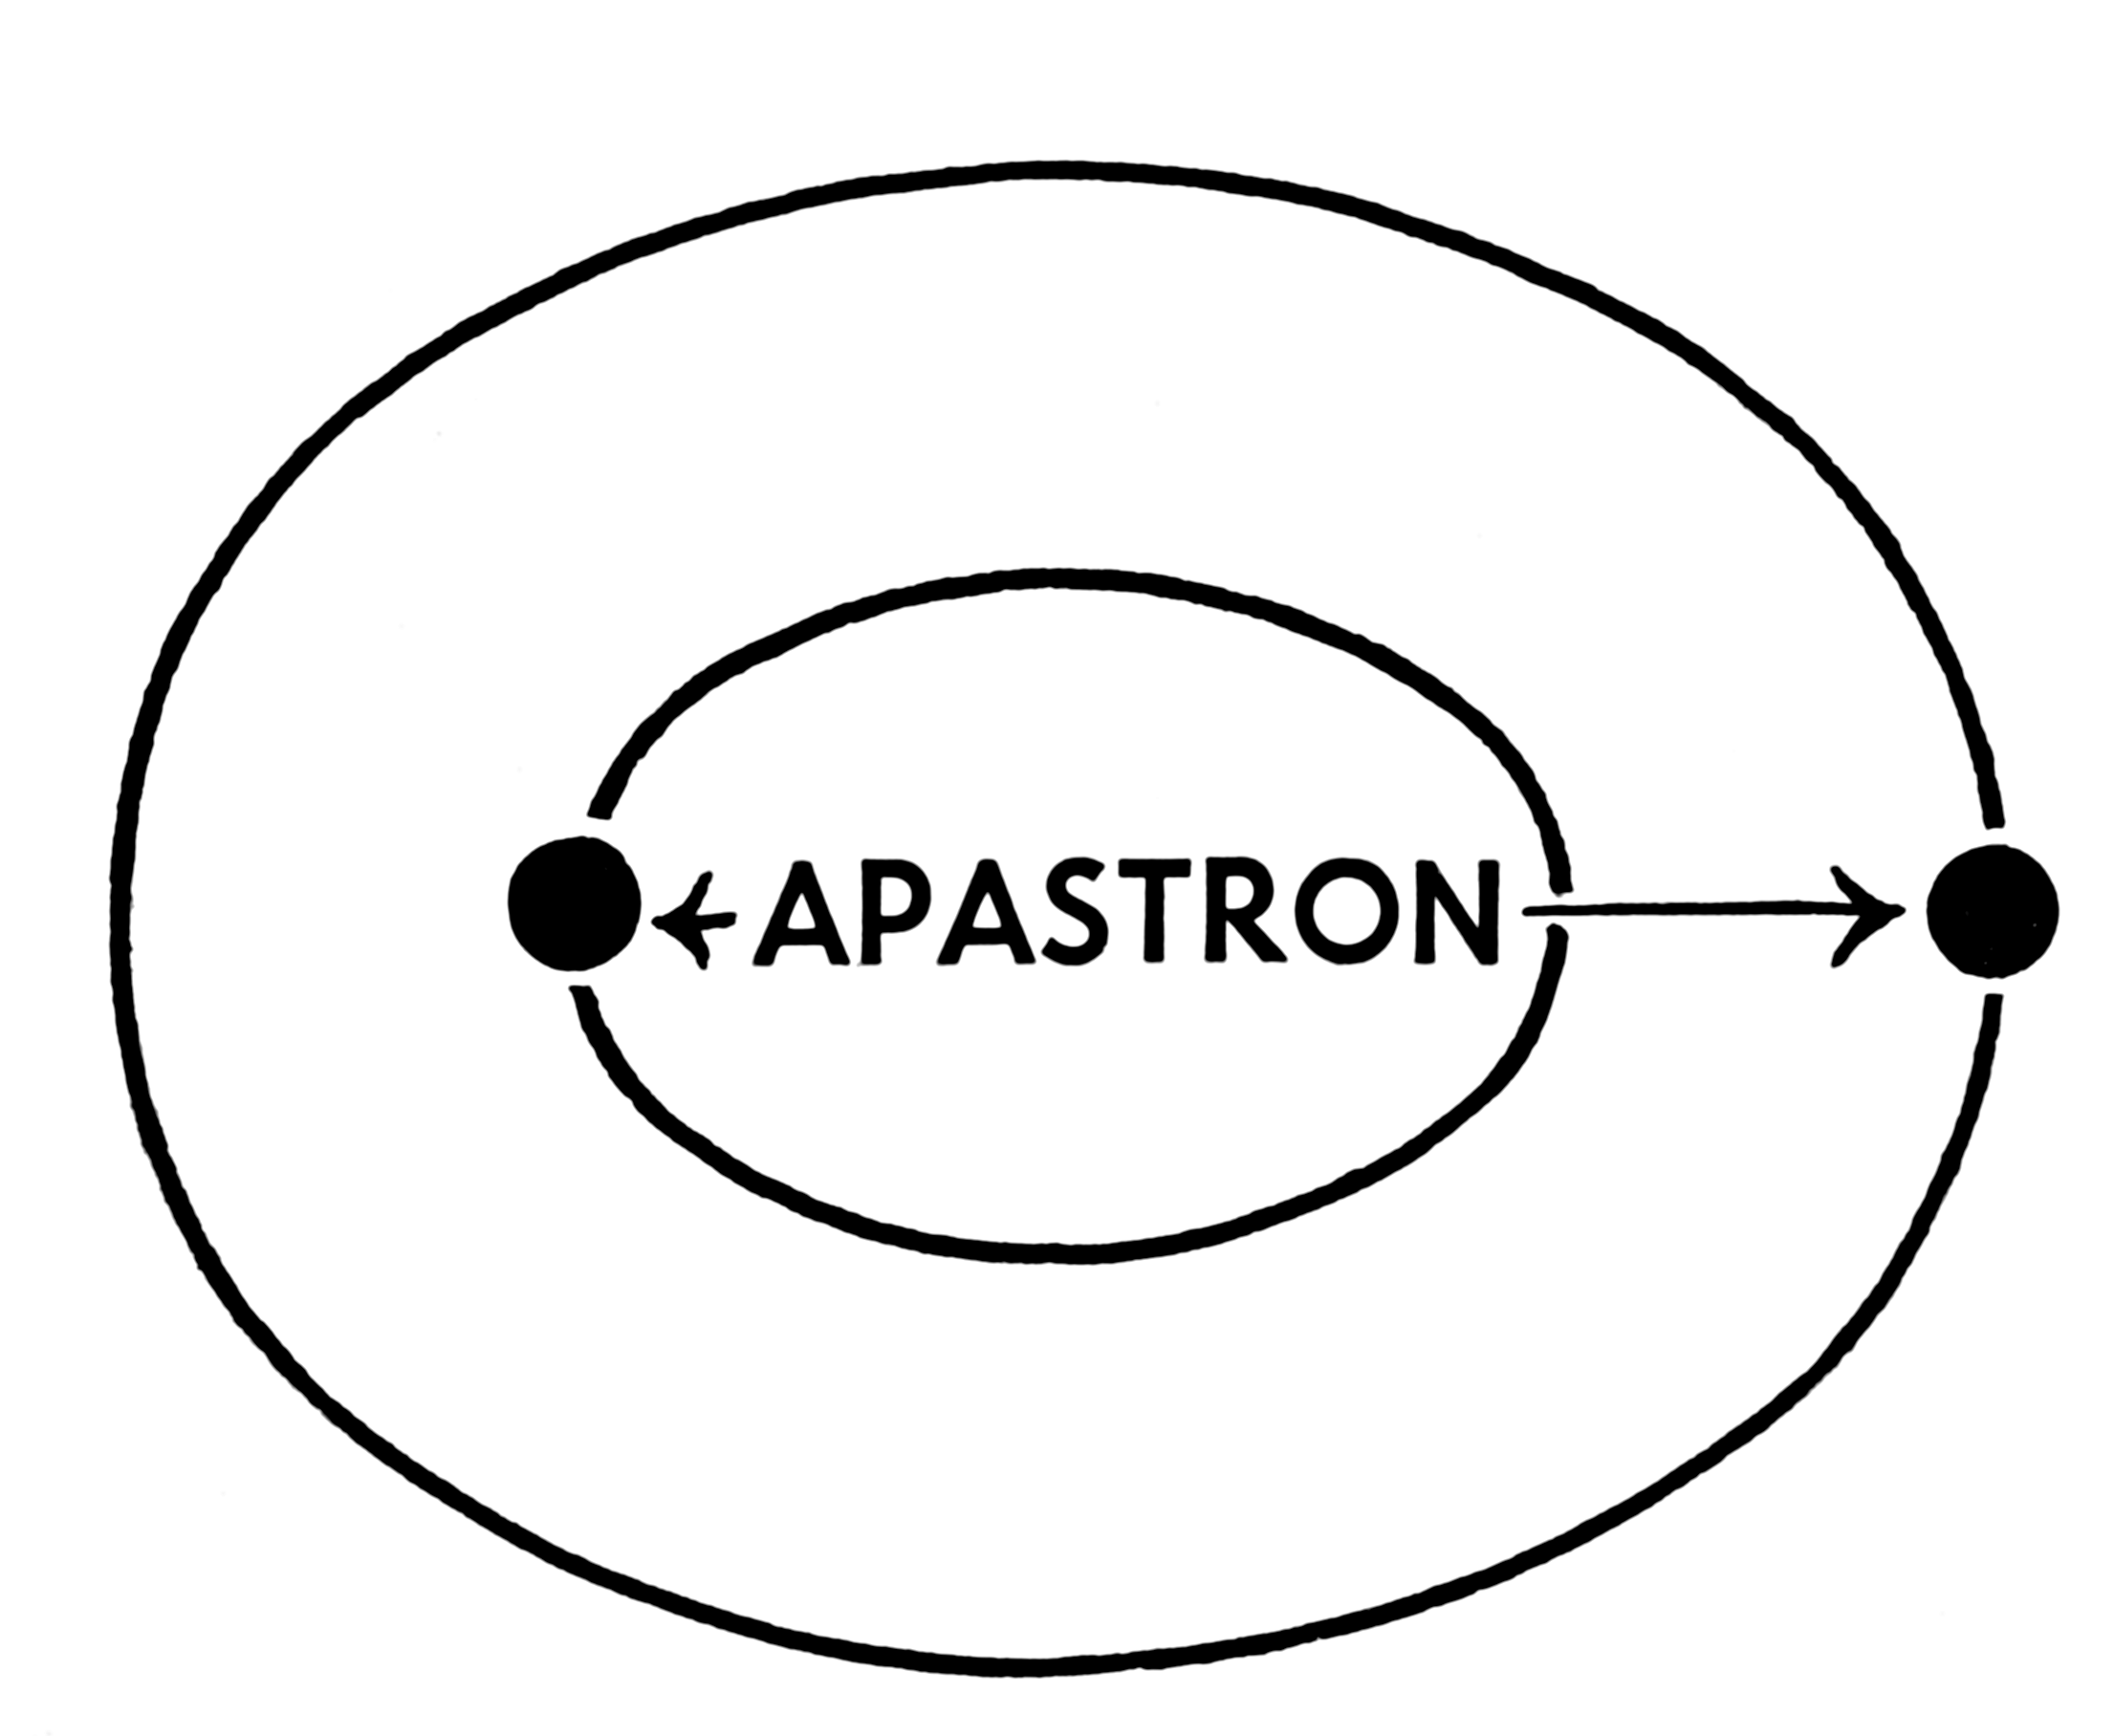 Apastron_(PSF).png